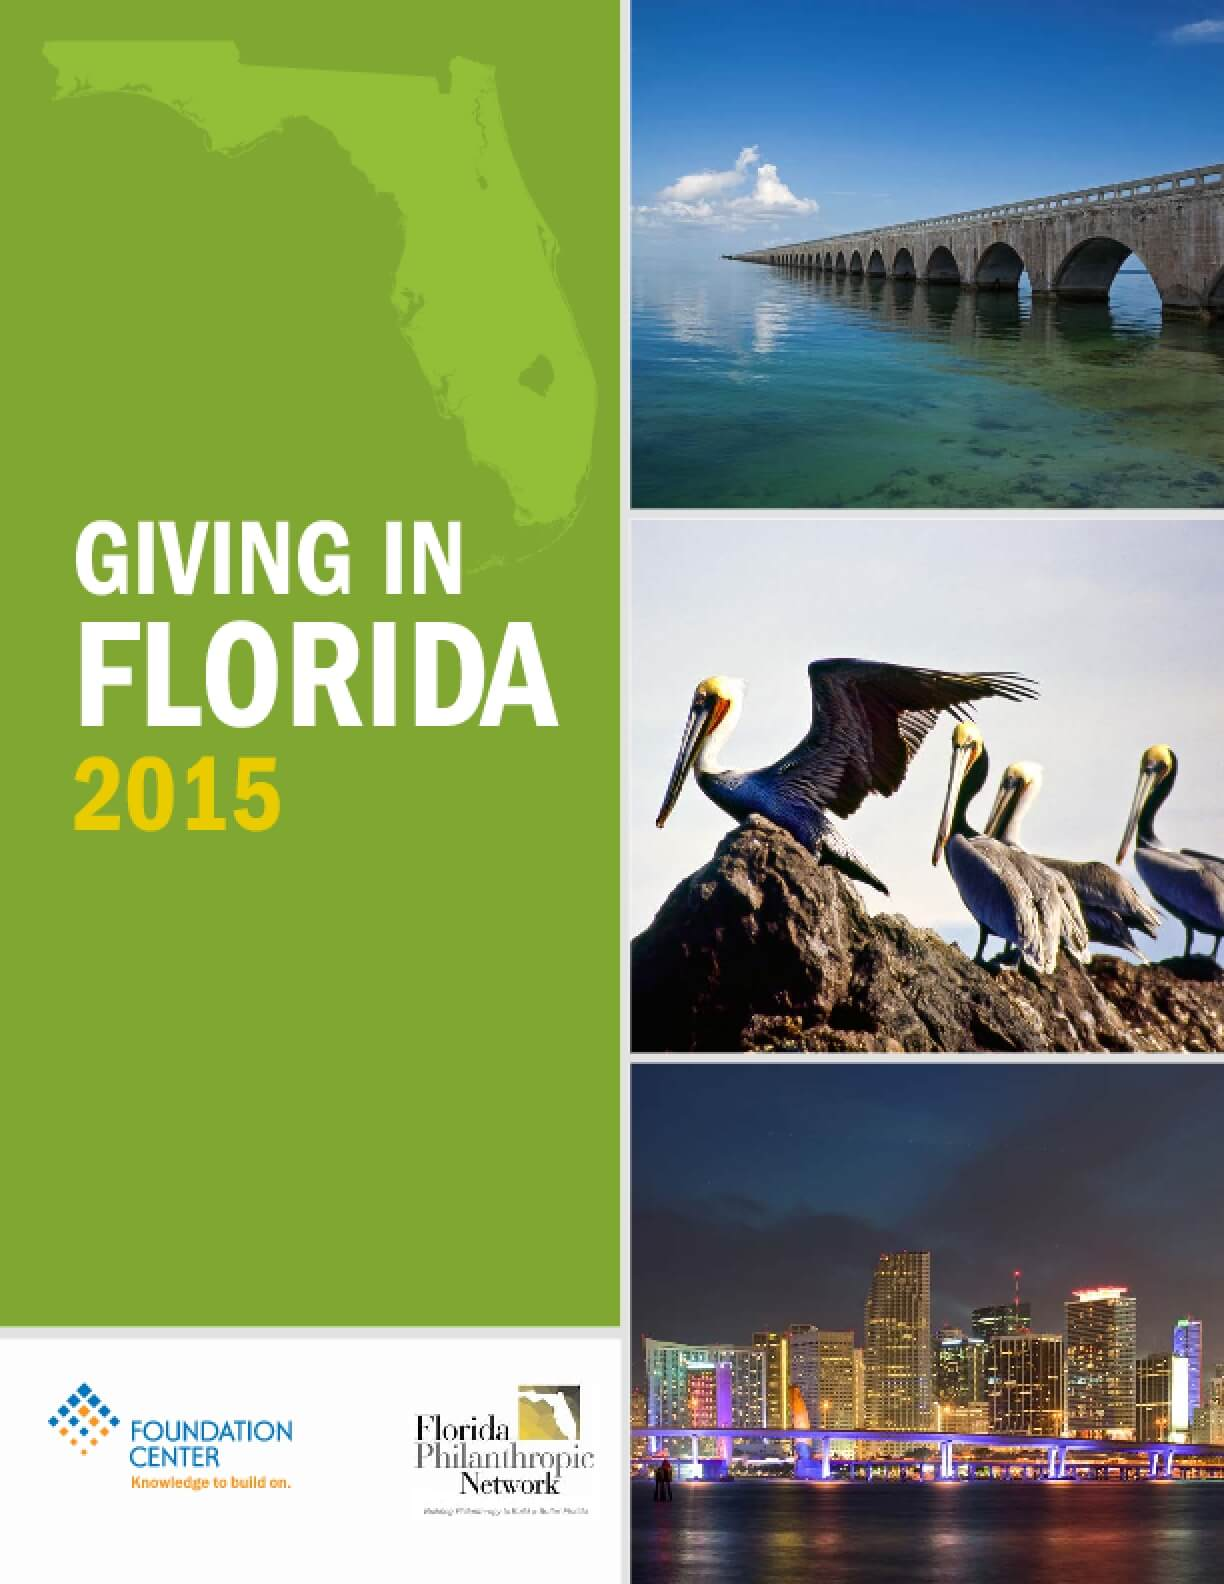 Giving in Florida, 2015